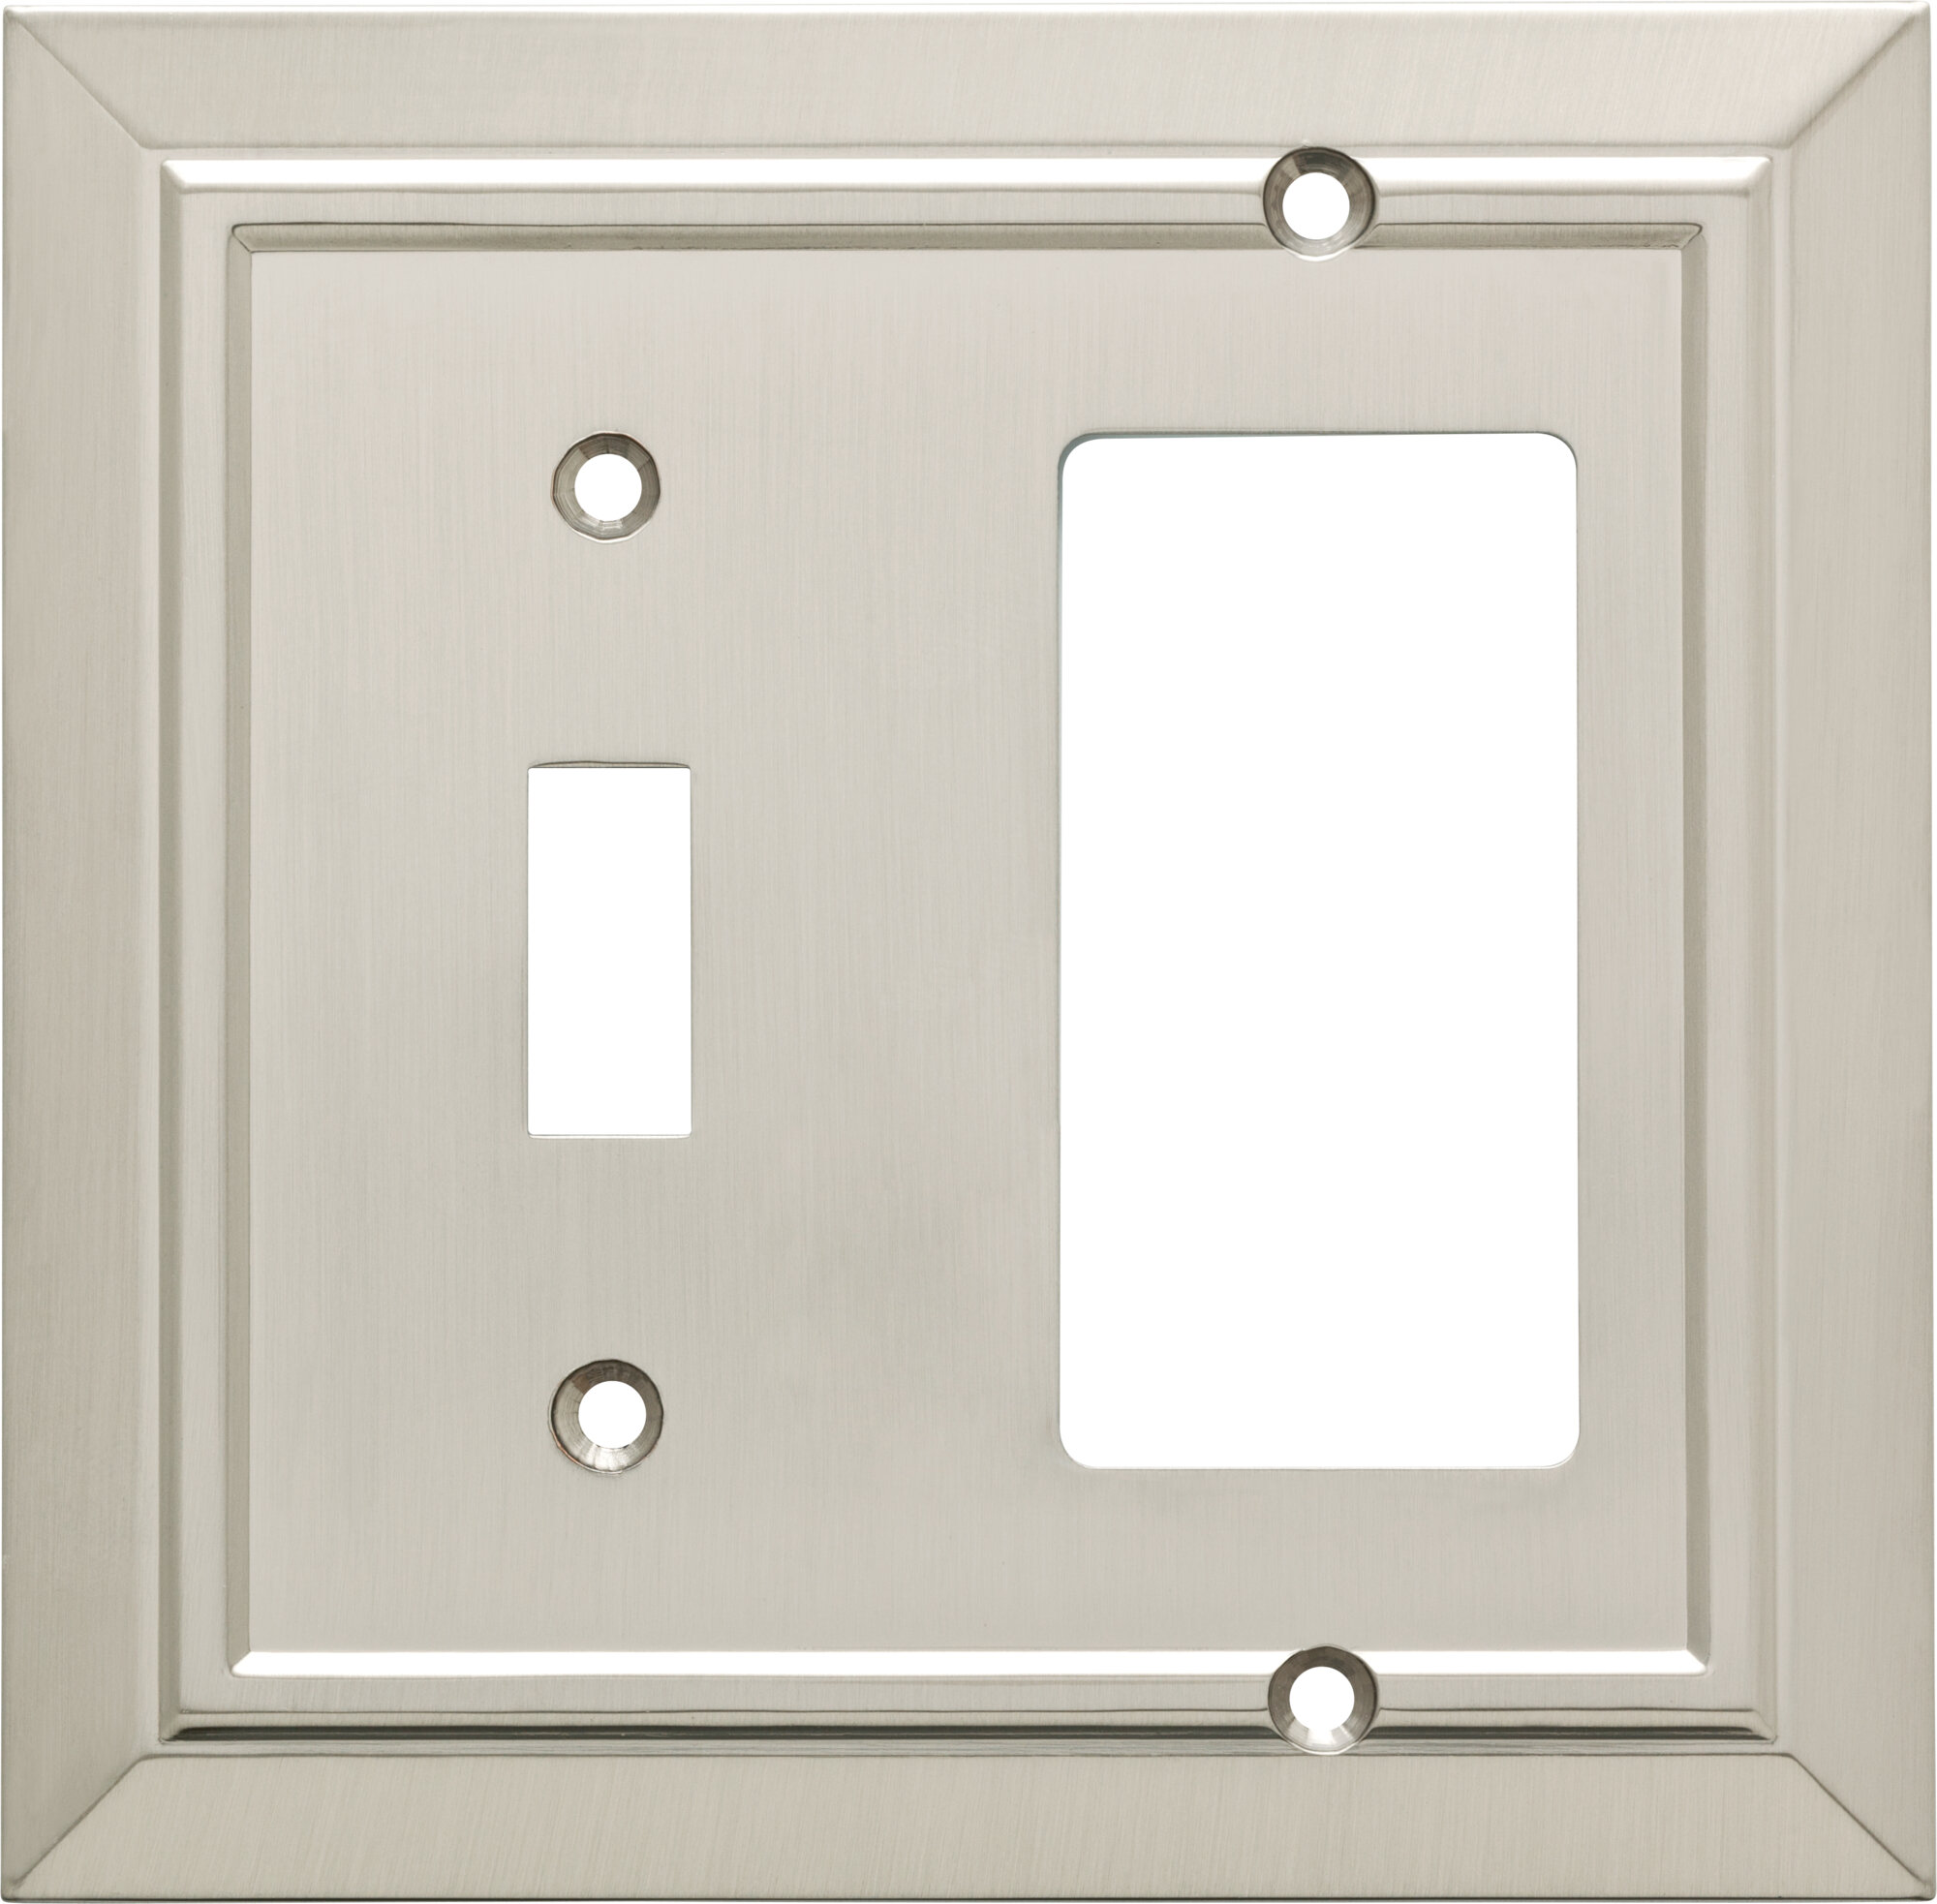 Franklin Brass Classic Architecture 2 Gang Toggle Light Switch Rocker Combination Wall Plate Reviews Wayfair